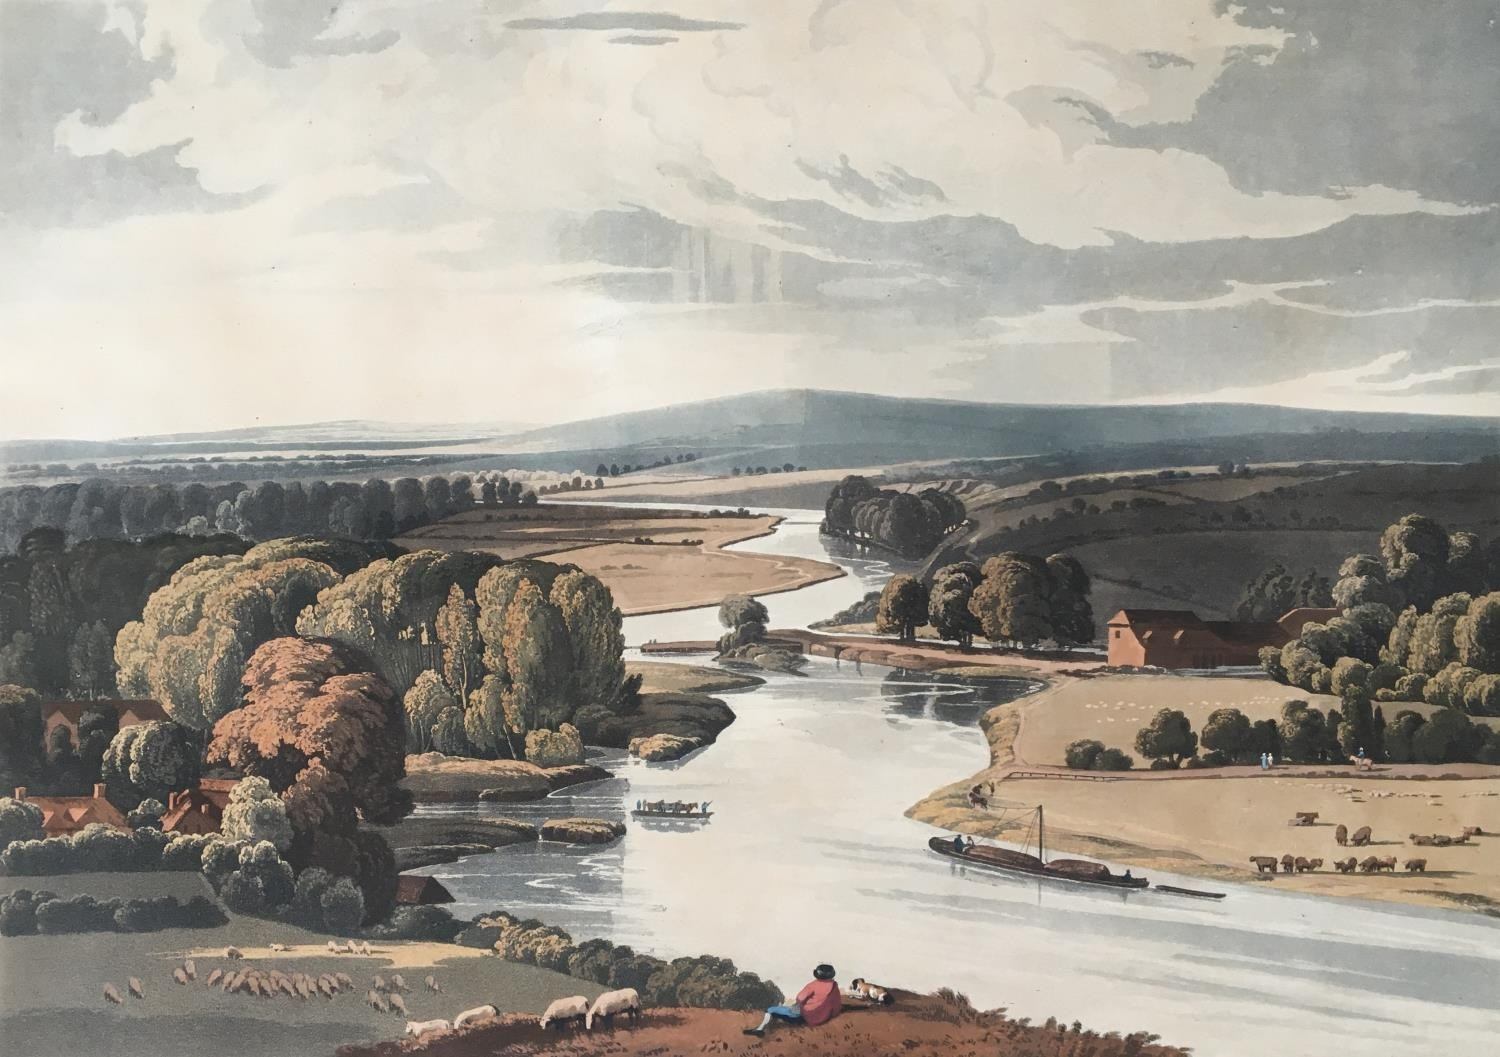 A collection of ten 19th century chromolithographs after William Havell, 'An Island On The Thames - Image 9 of 10